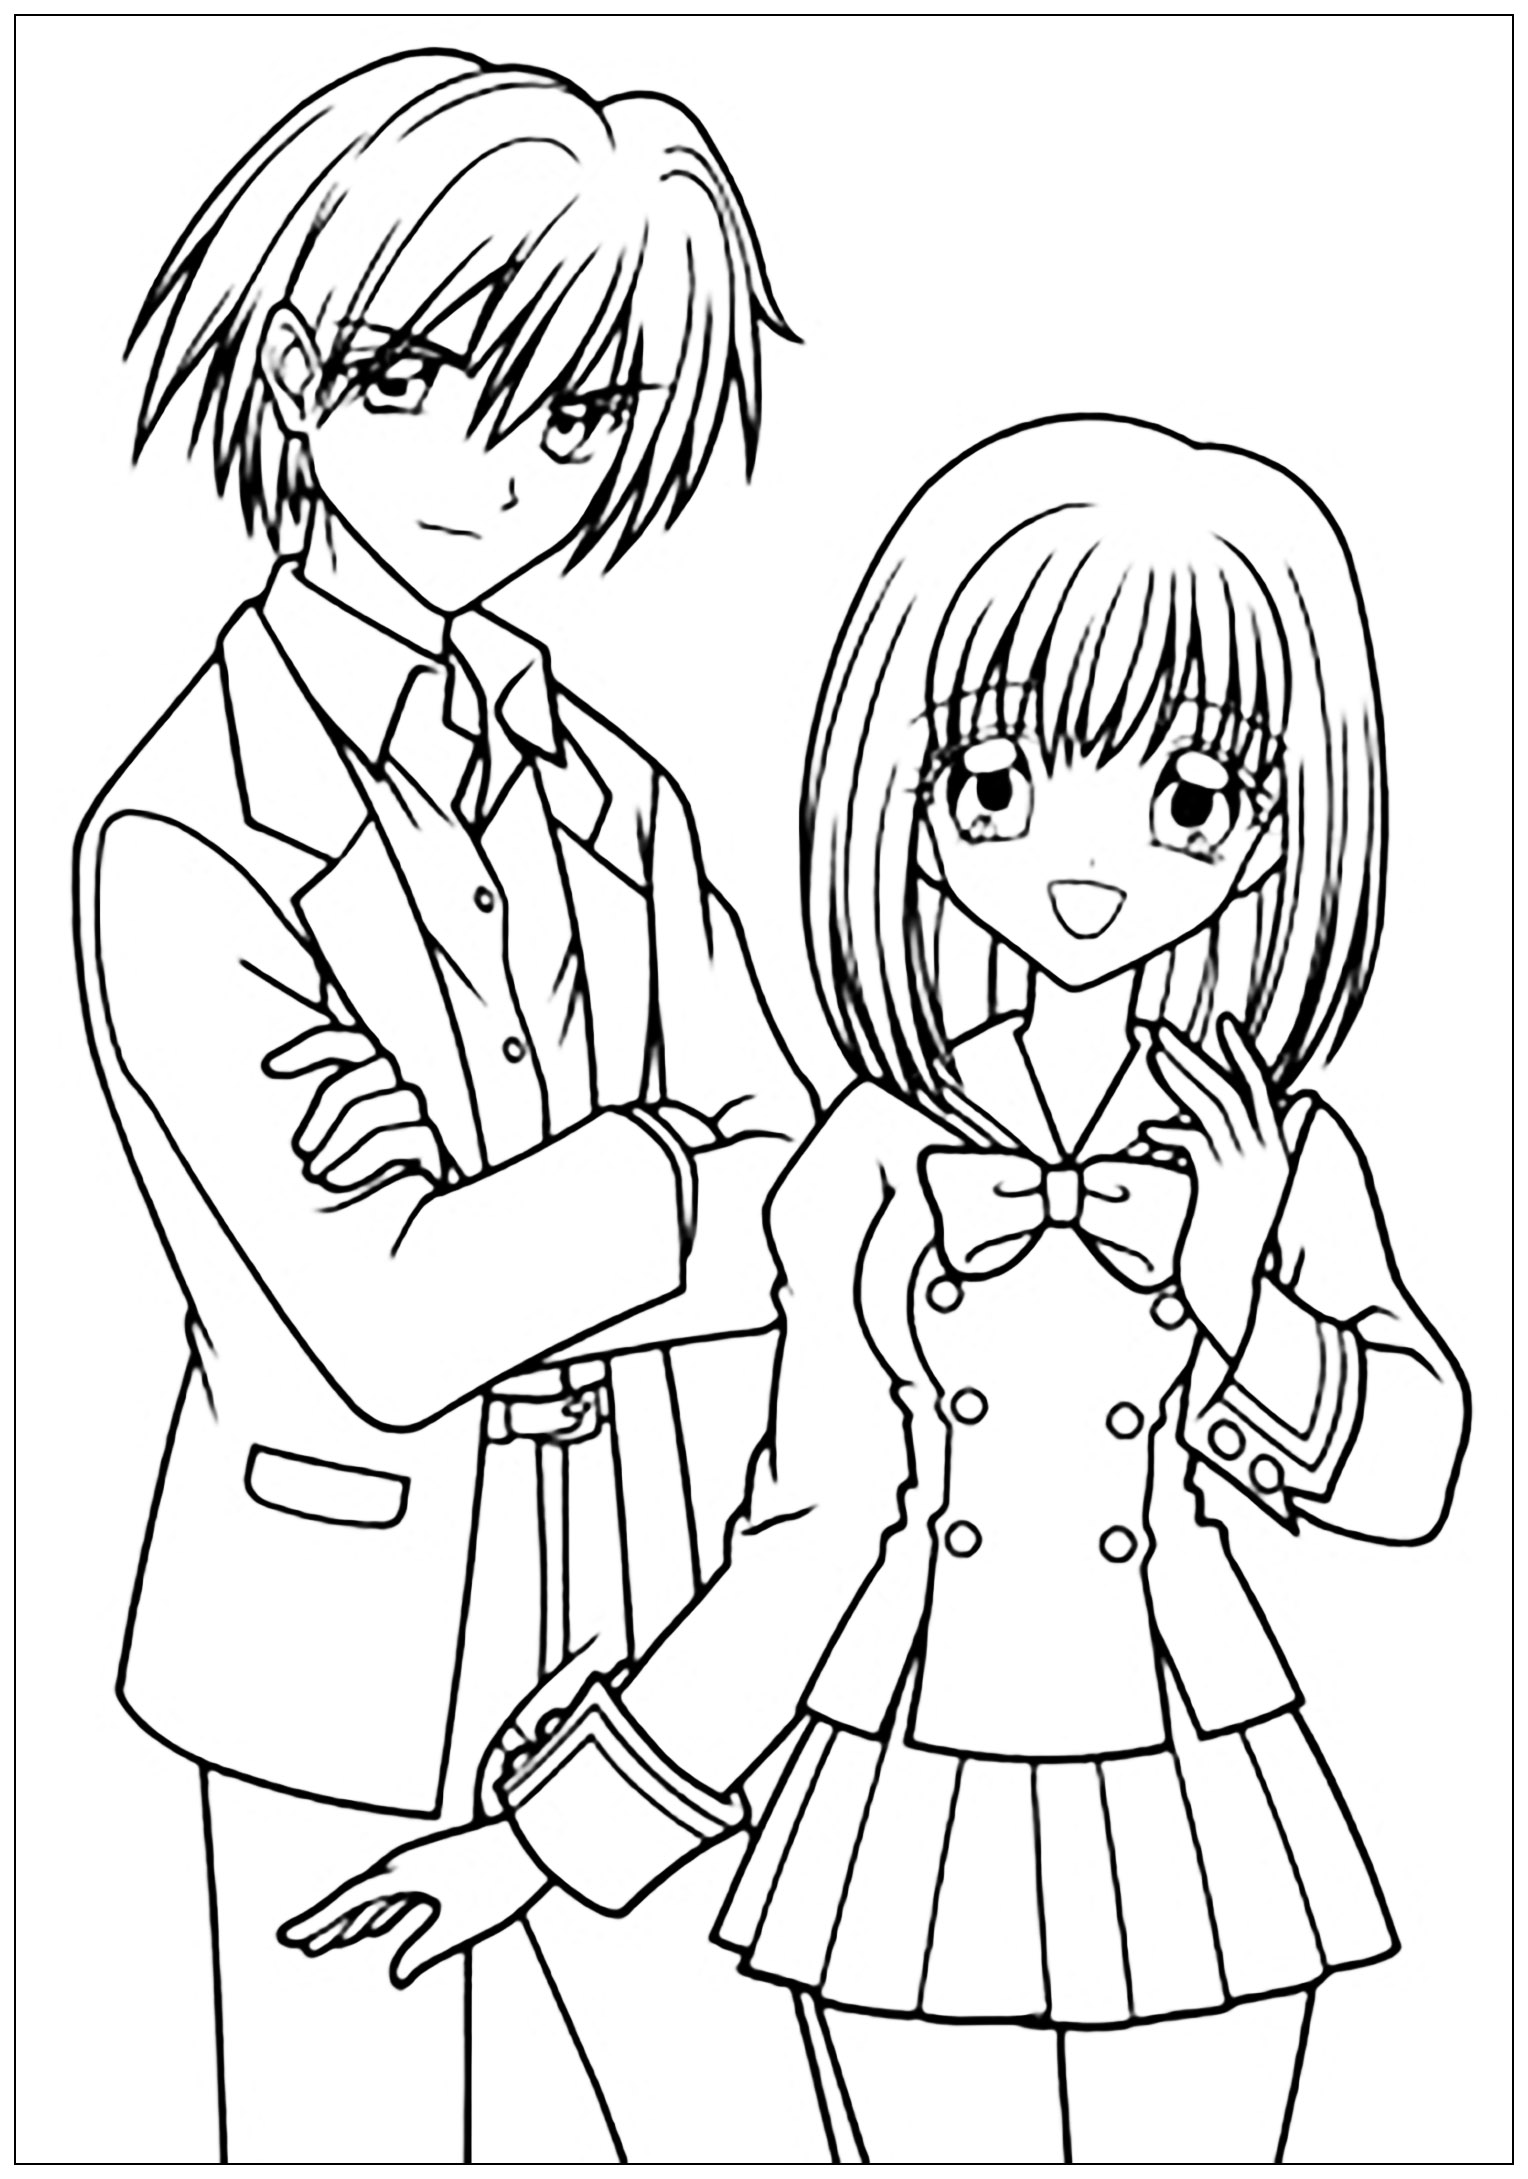 Manga drawing boy and girl in school suit Manga Anime